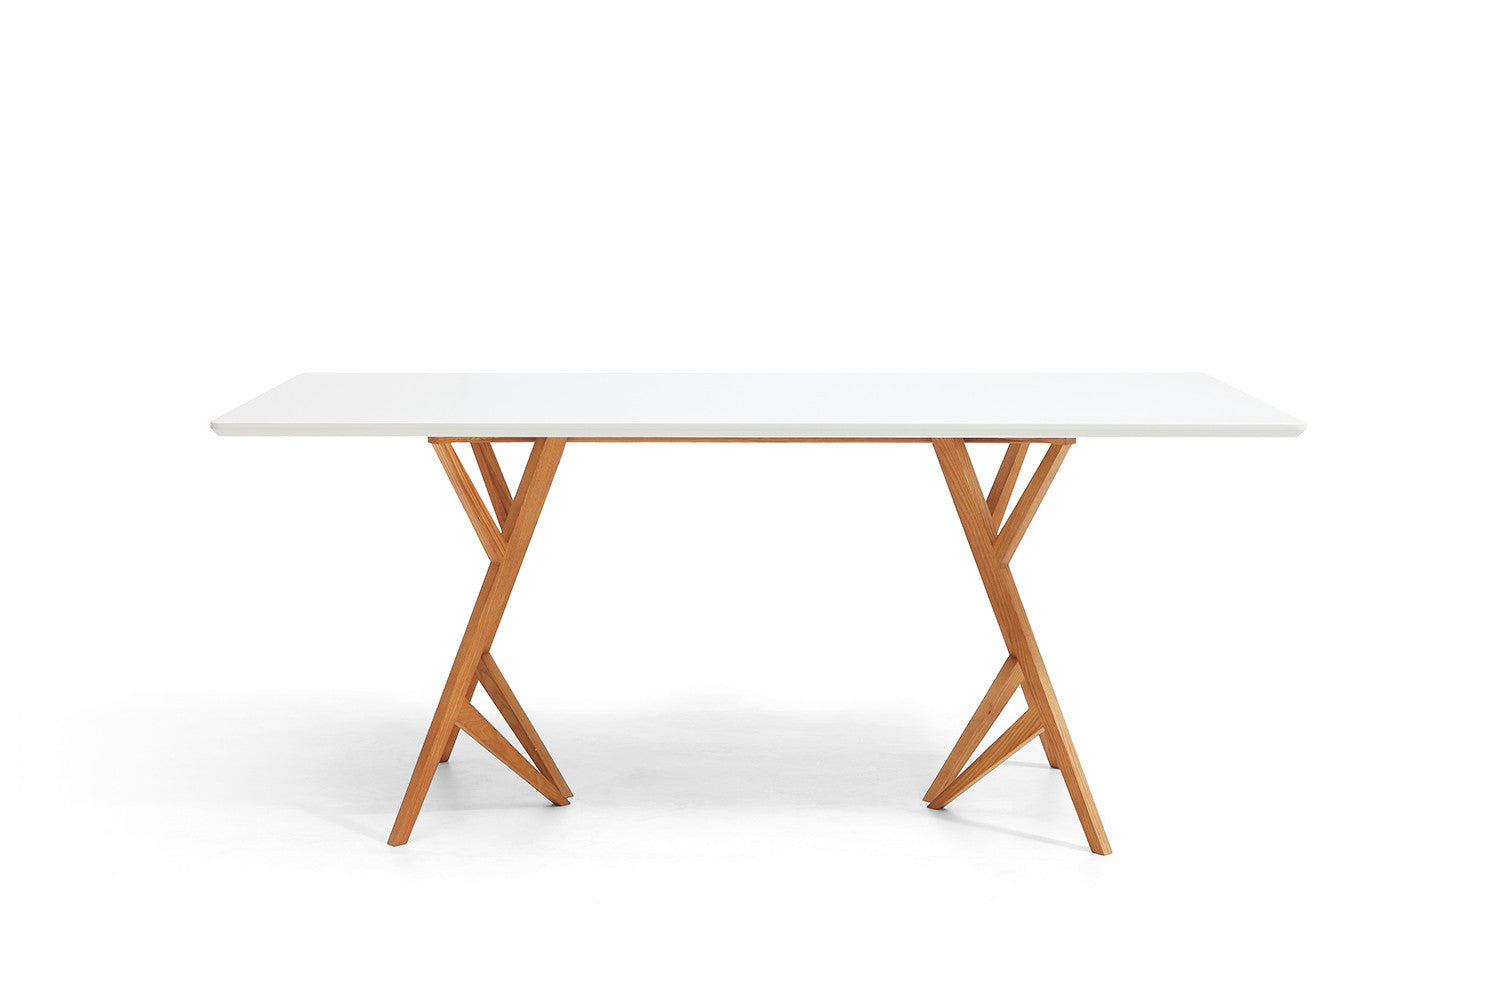 Table de salle manger design scandinave vispa dewarens for Table salle a manger en bois